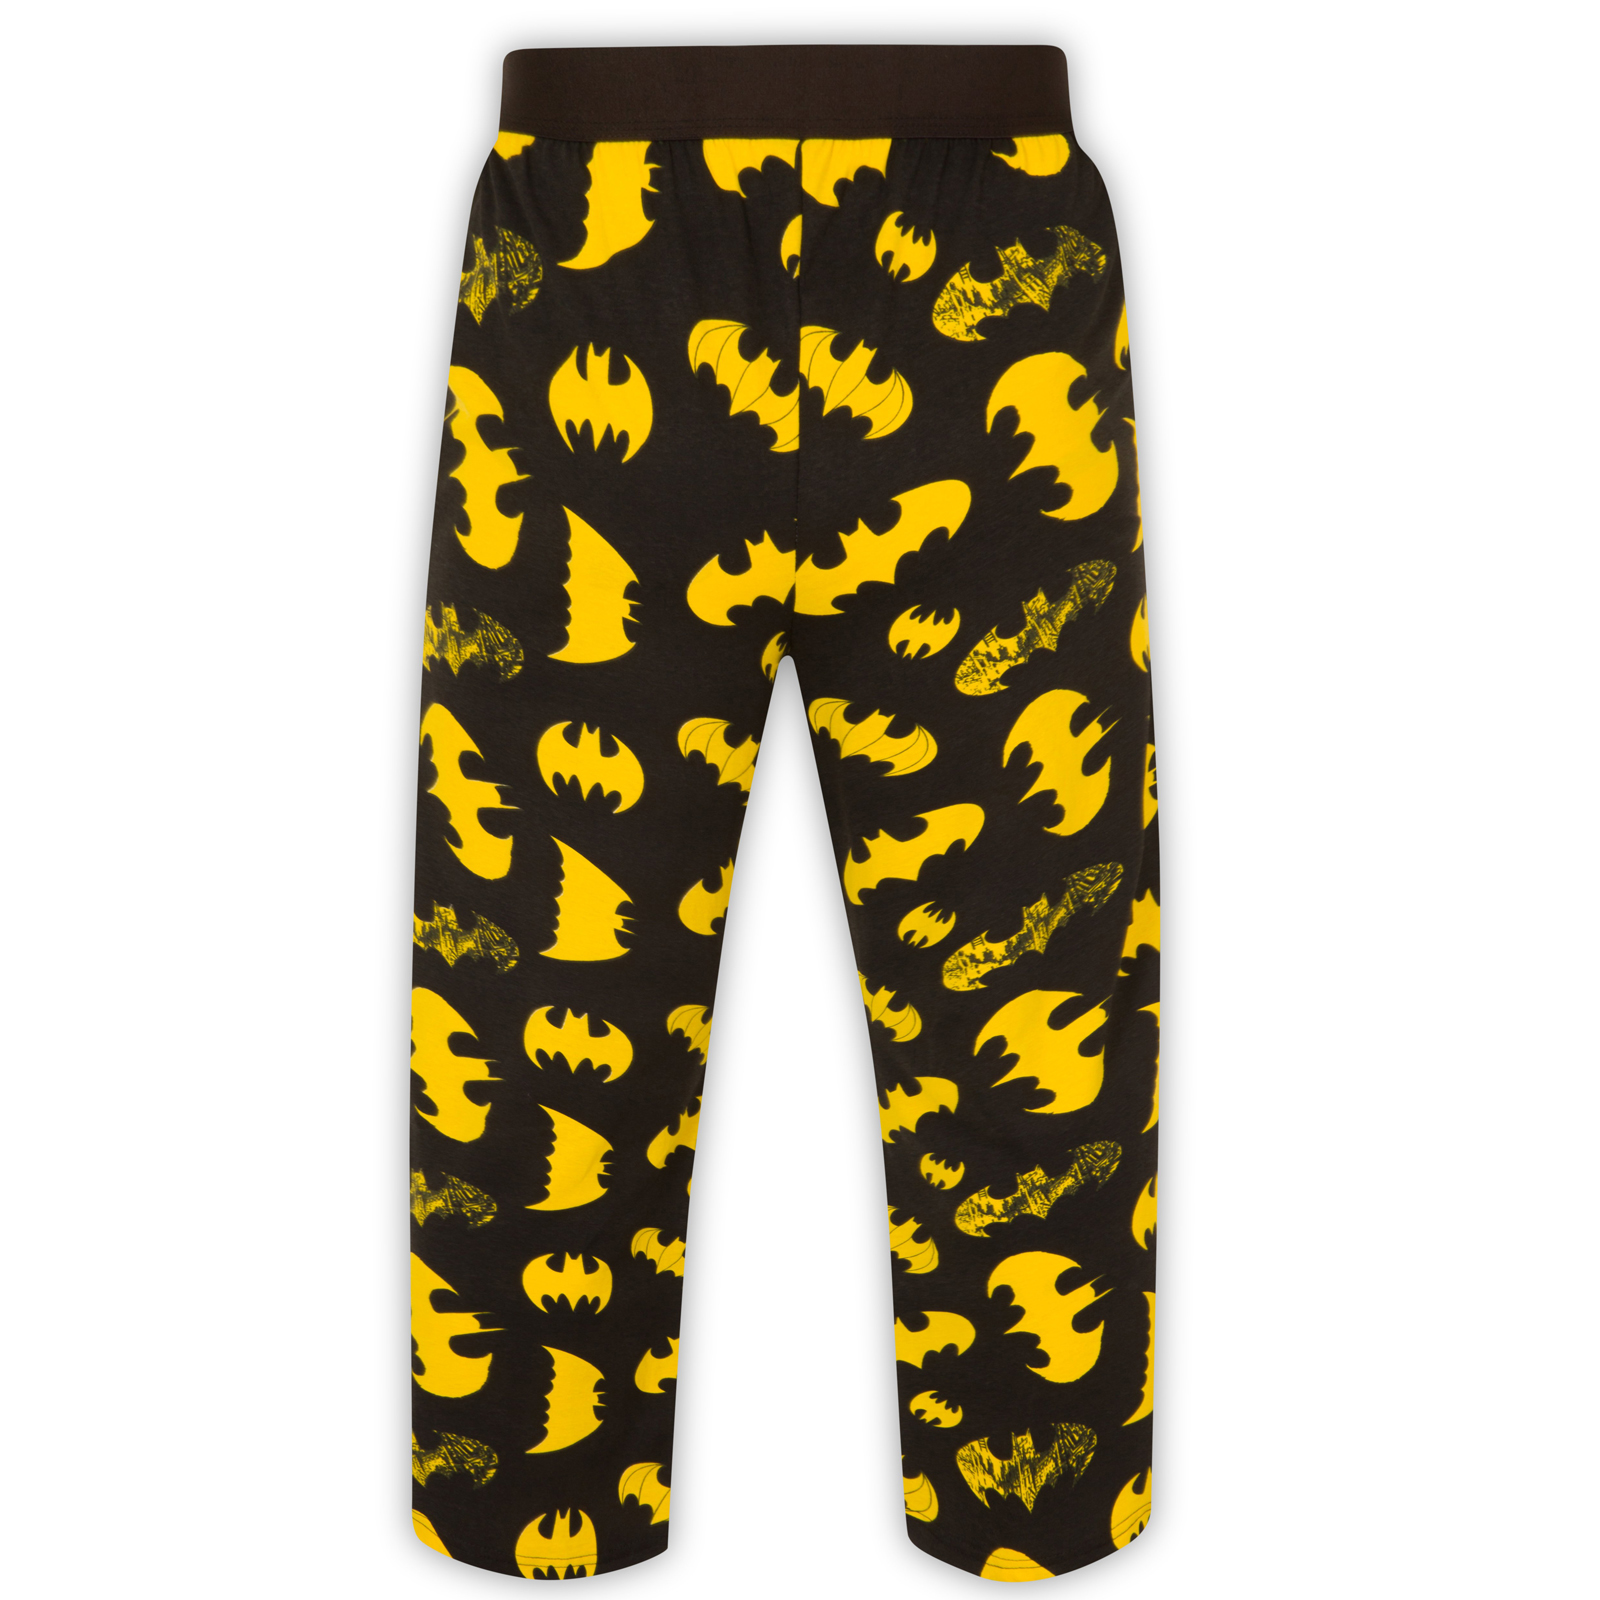 Shop for batman pajamas online at Target. Free shipping on purchases over $35 and save 5% every day with your Target REDcard.